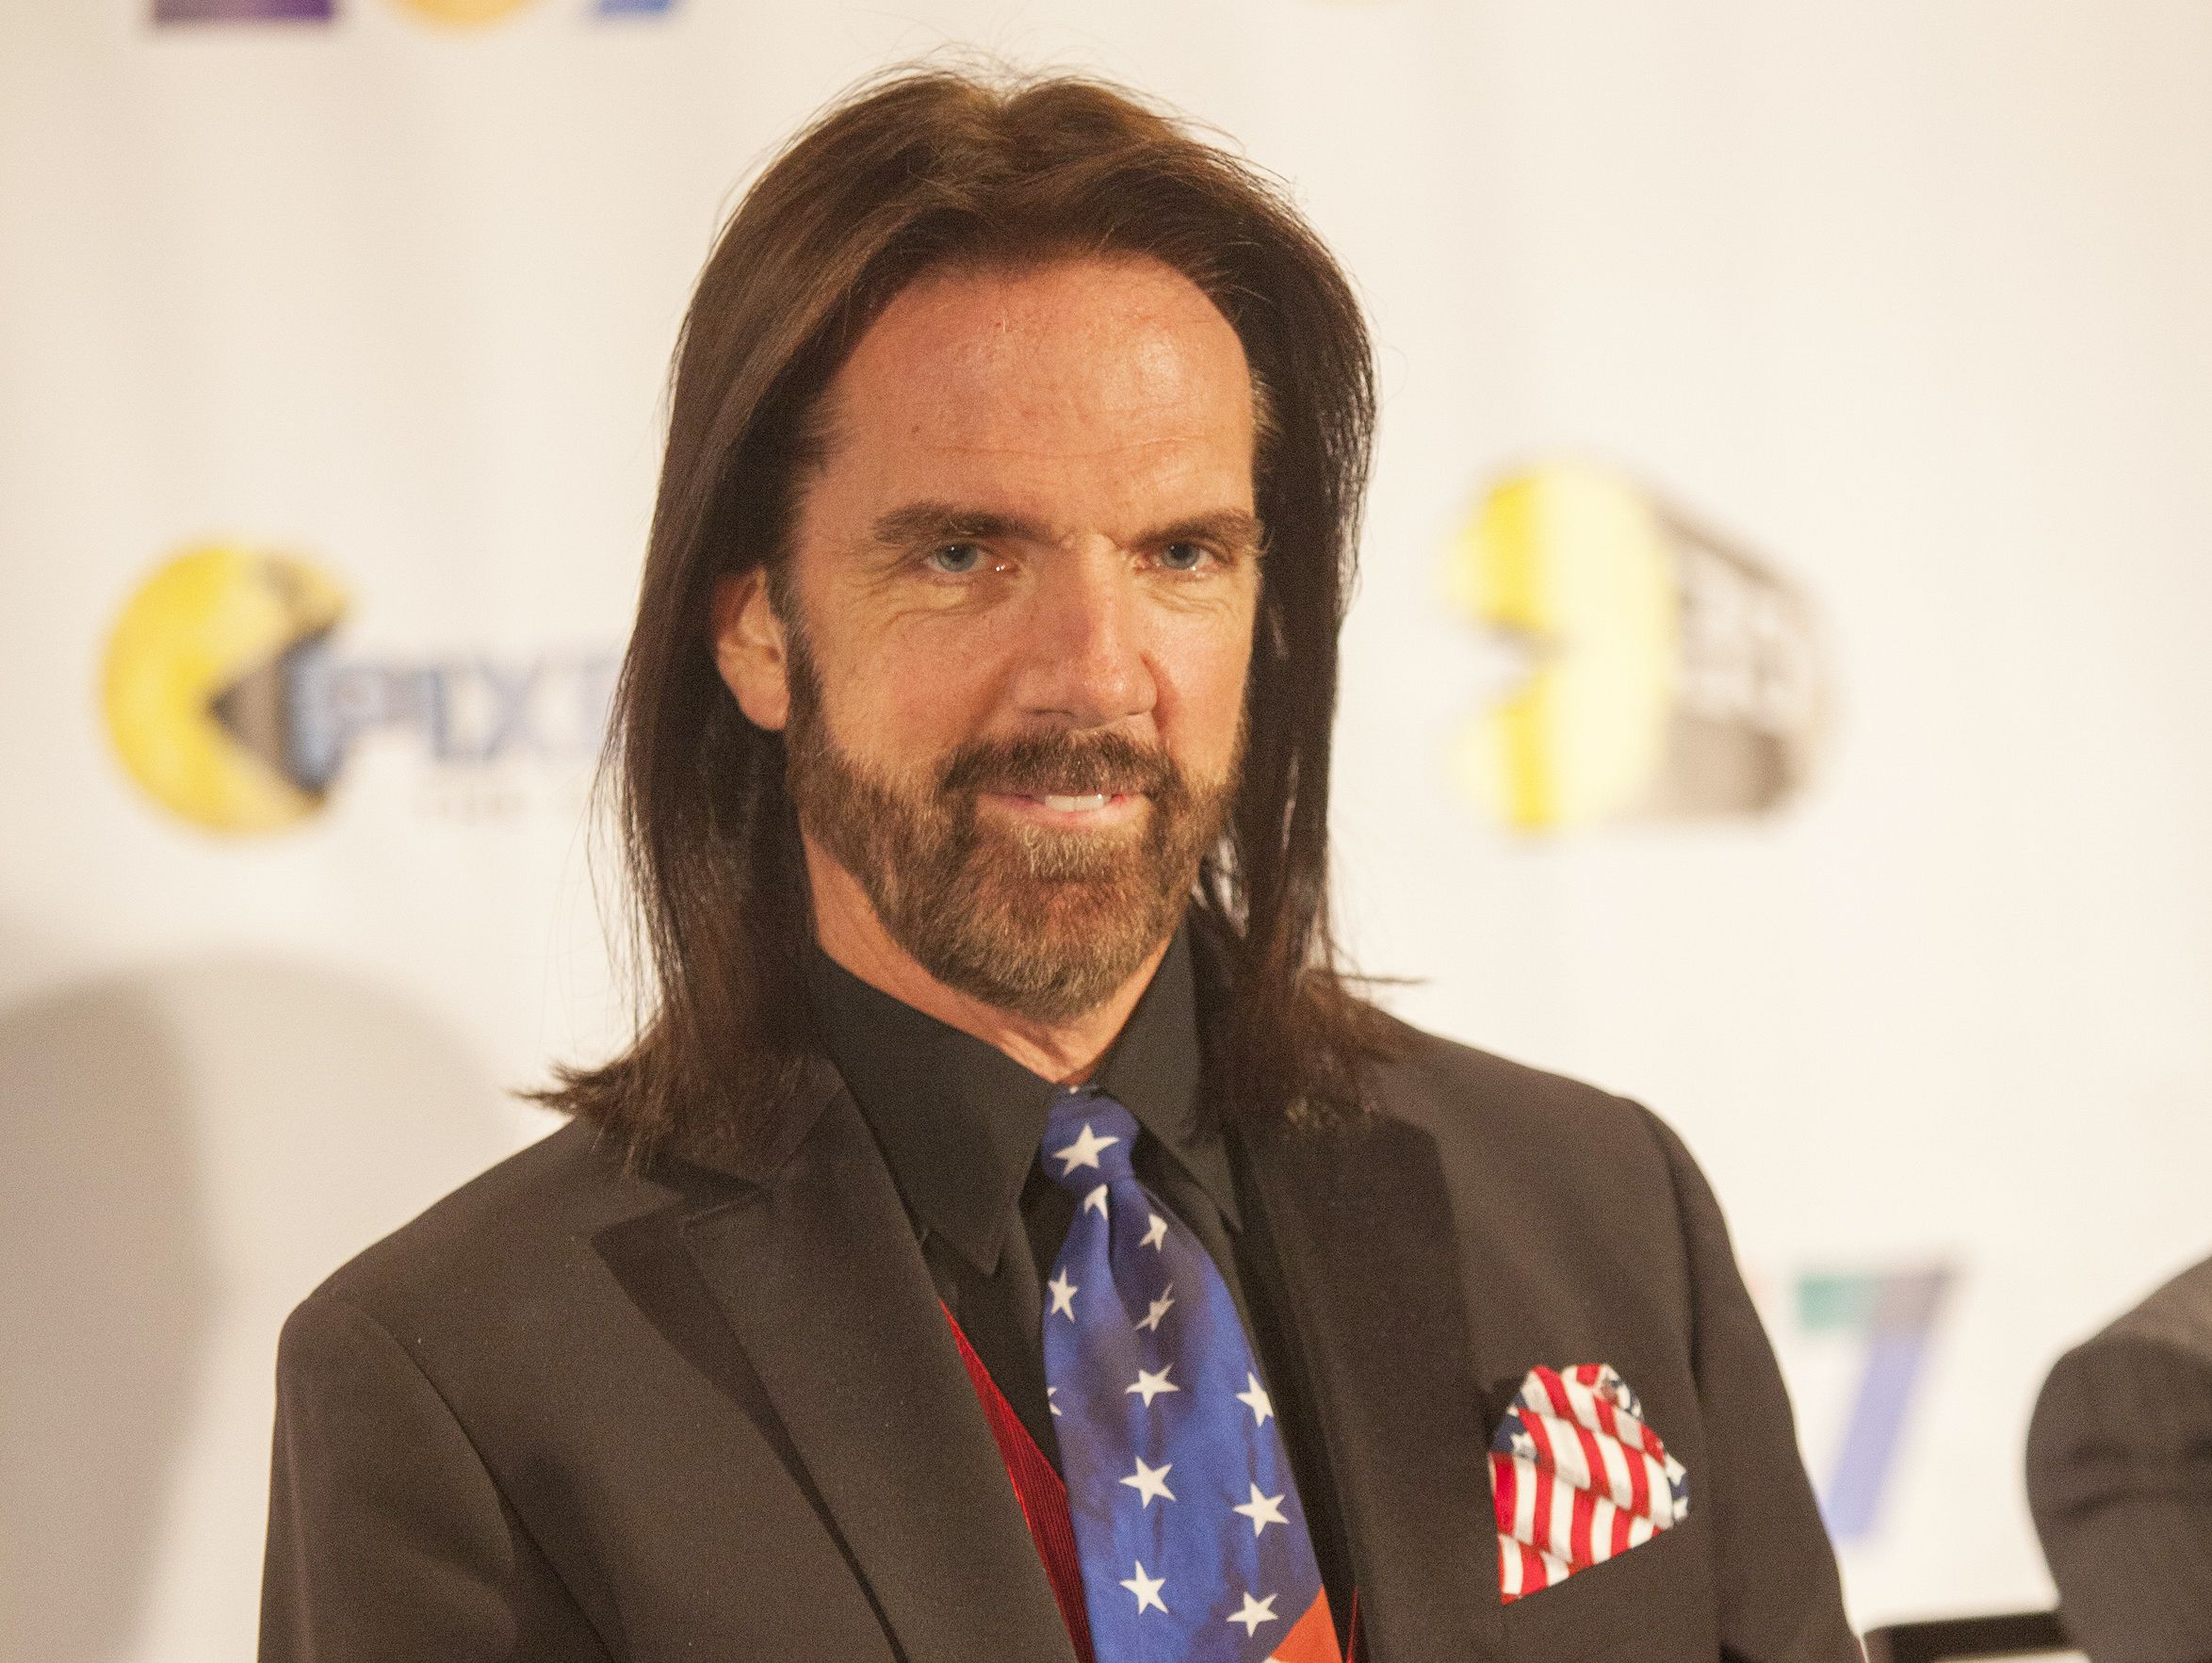 Donkey Kong 'King' Billy Mitchell loses crown after Twin Galaxies ban